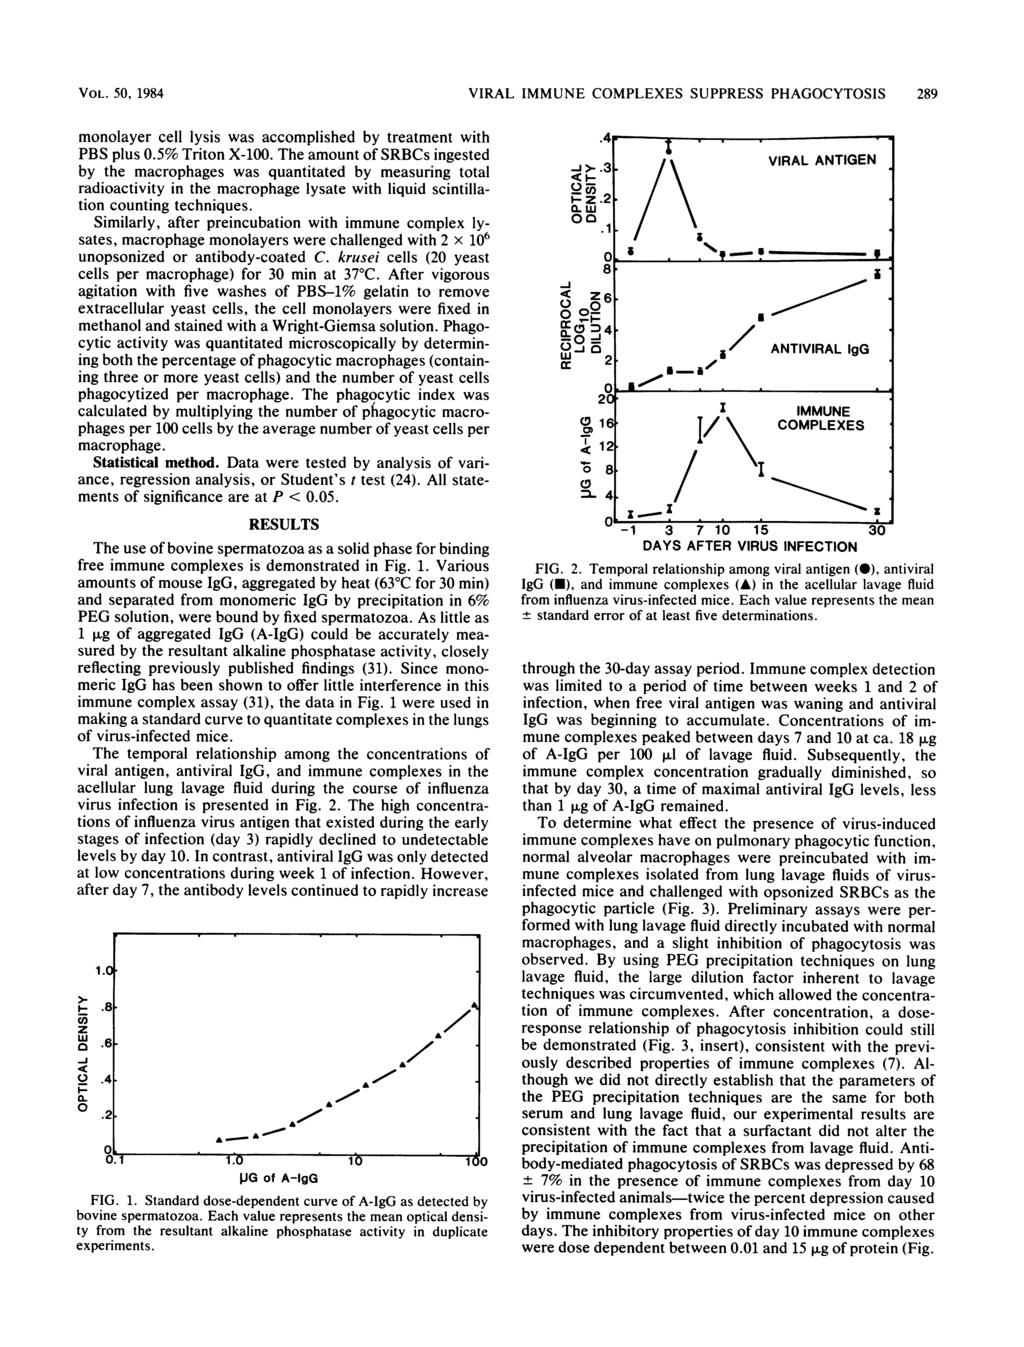 VOL. 5, 1984 VIRAL IMMUNE COMPLEXES SUPPRESS PHAGOCYTOSIS 289 monolayer cell lysis as accomplished by treatment ith PBS plus.5% Triton X-1.